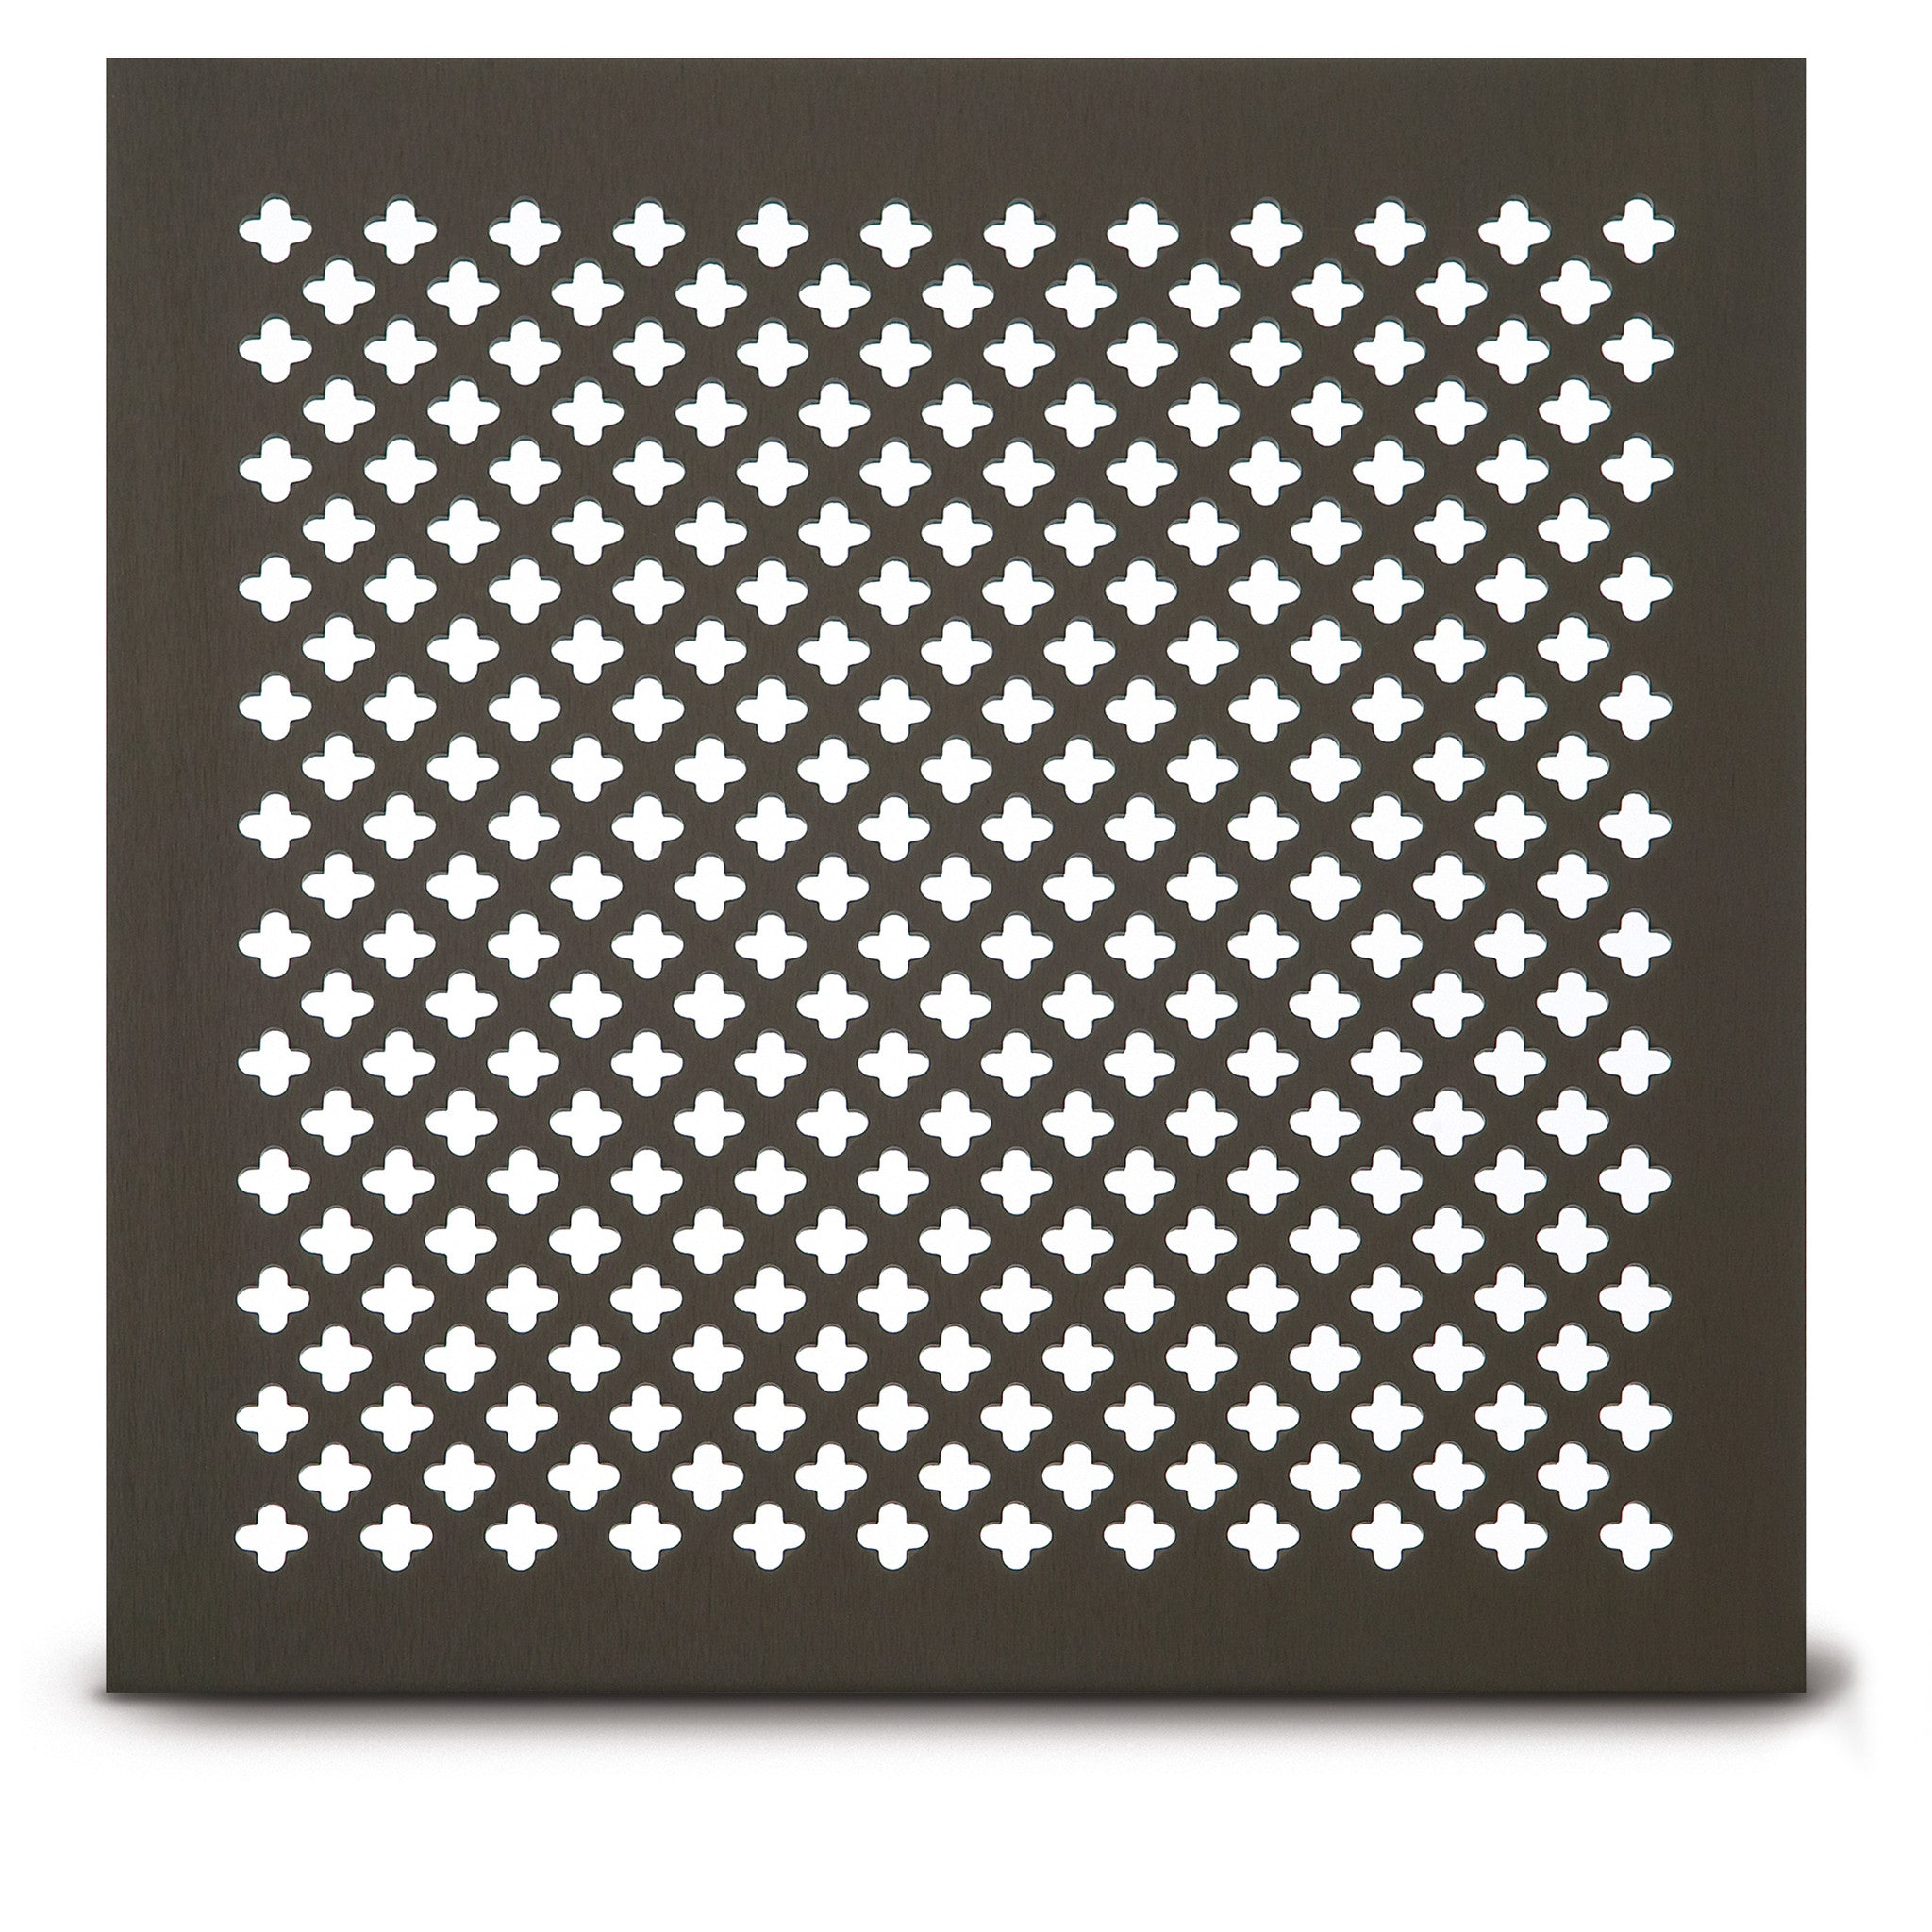 204 clover leaf perforated grille | architectural grille